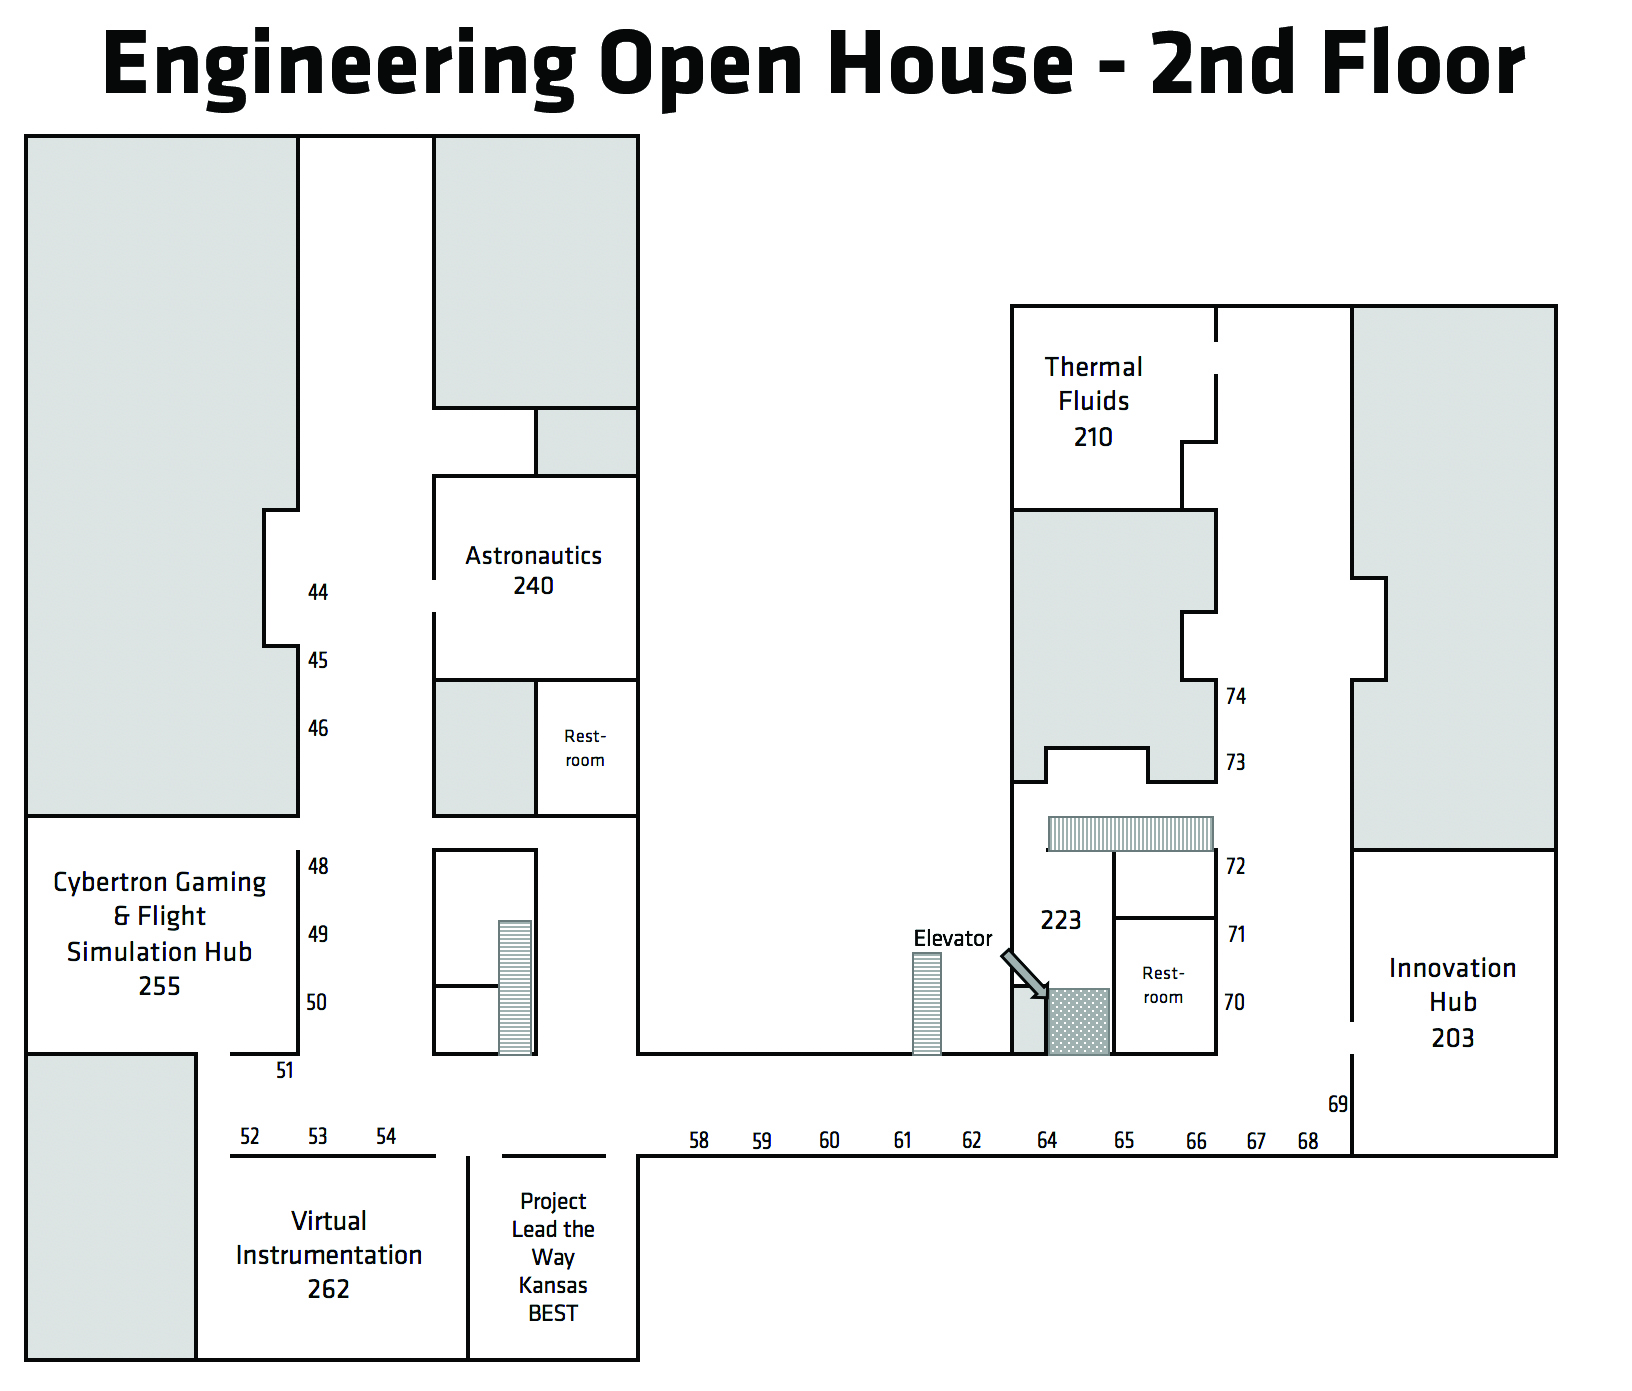 Experiential Engineering Building 2nd Floor Map